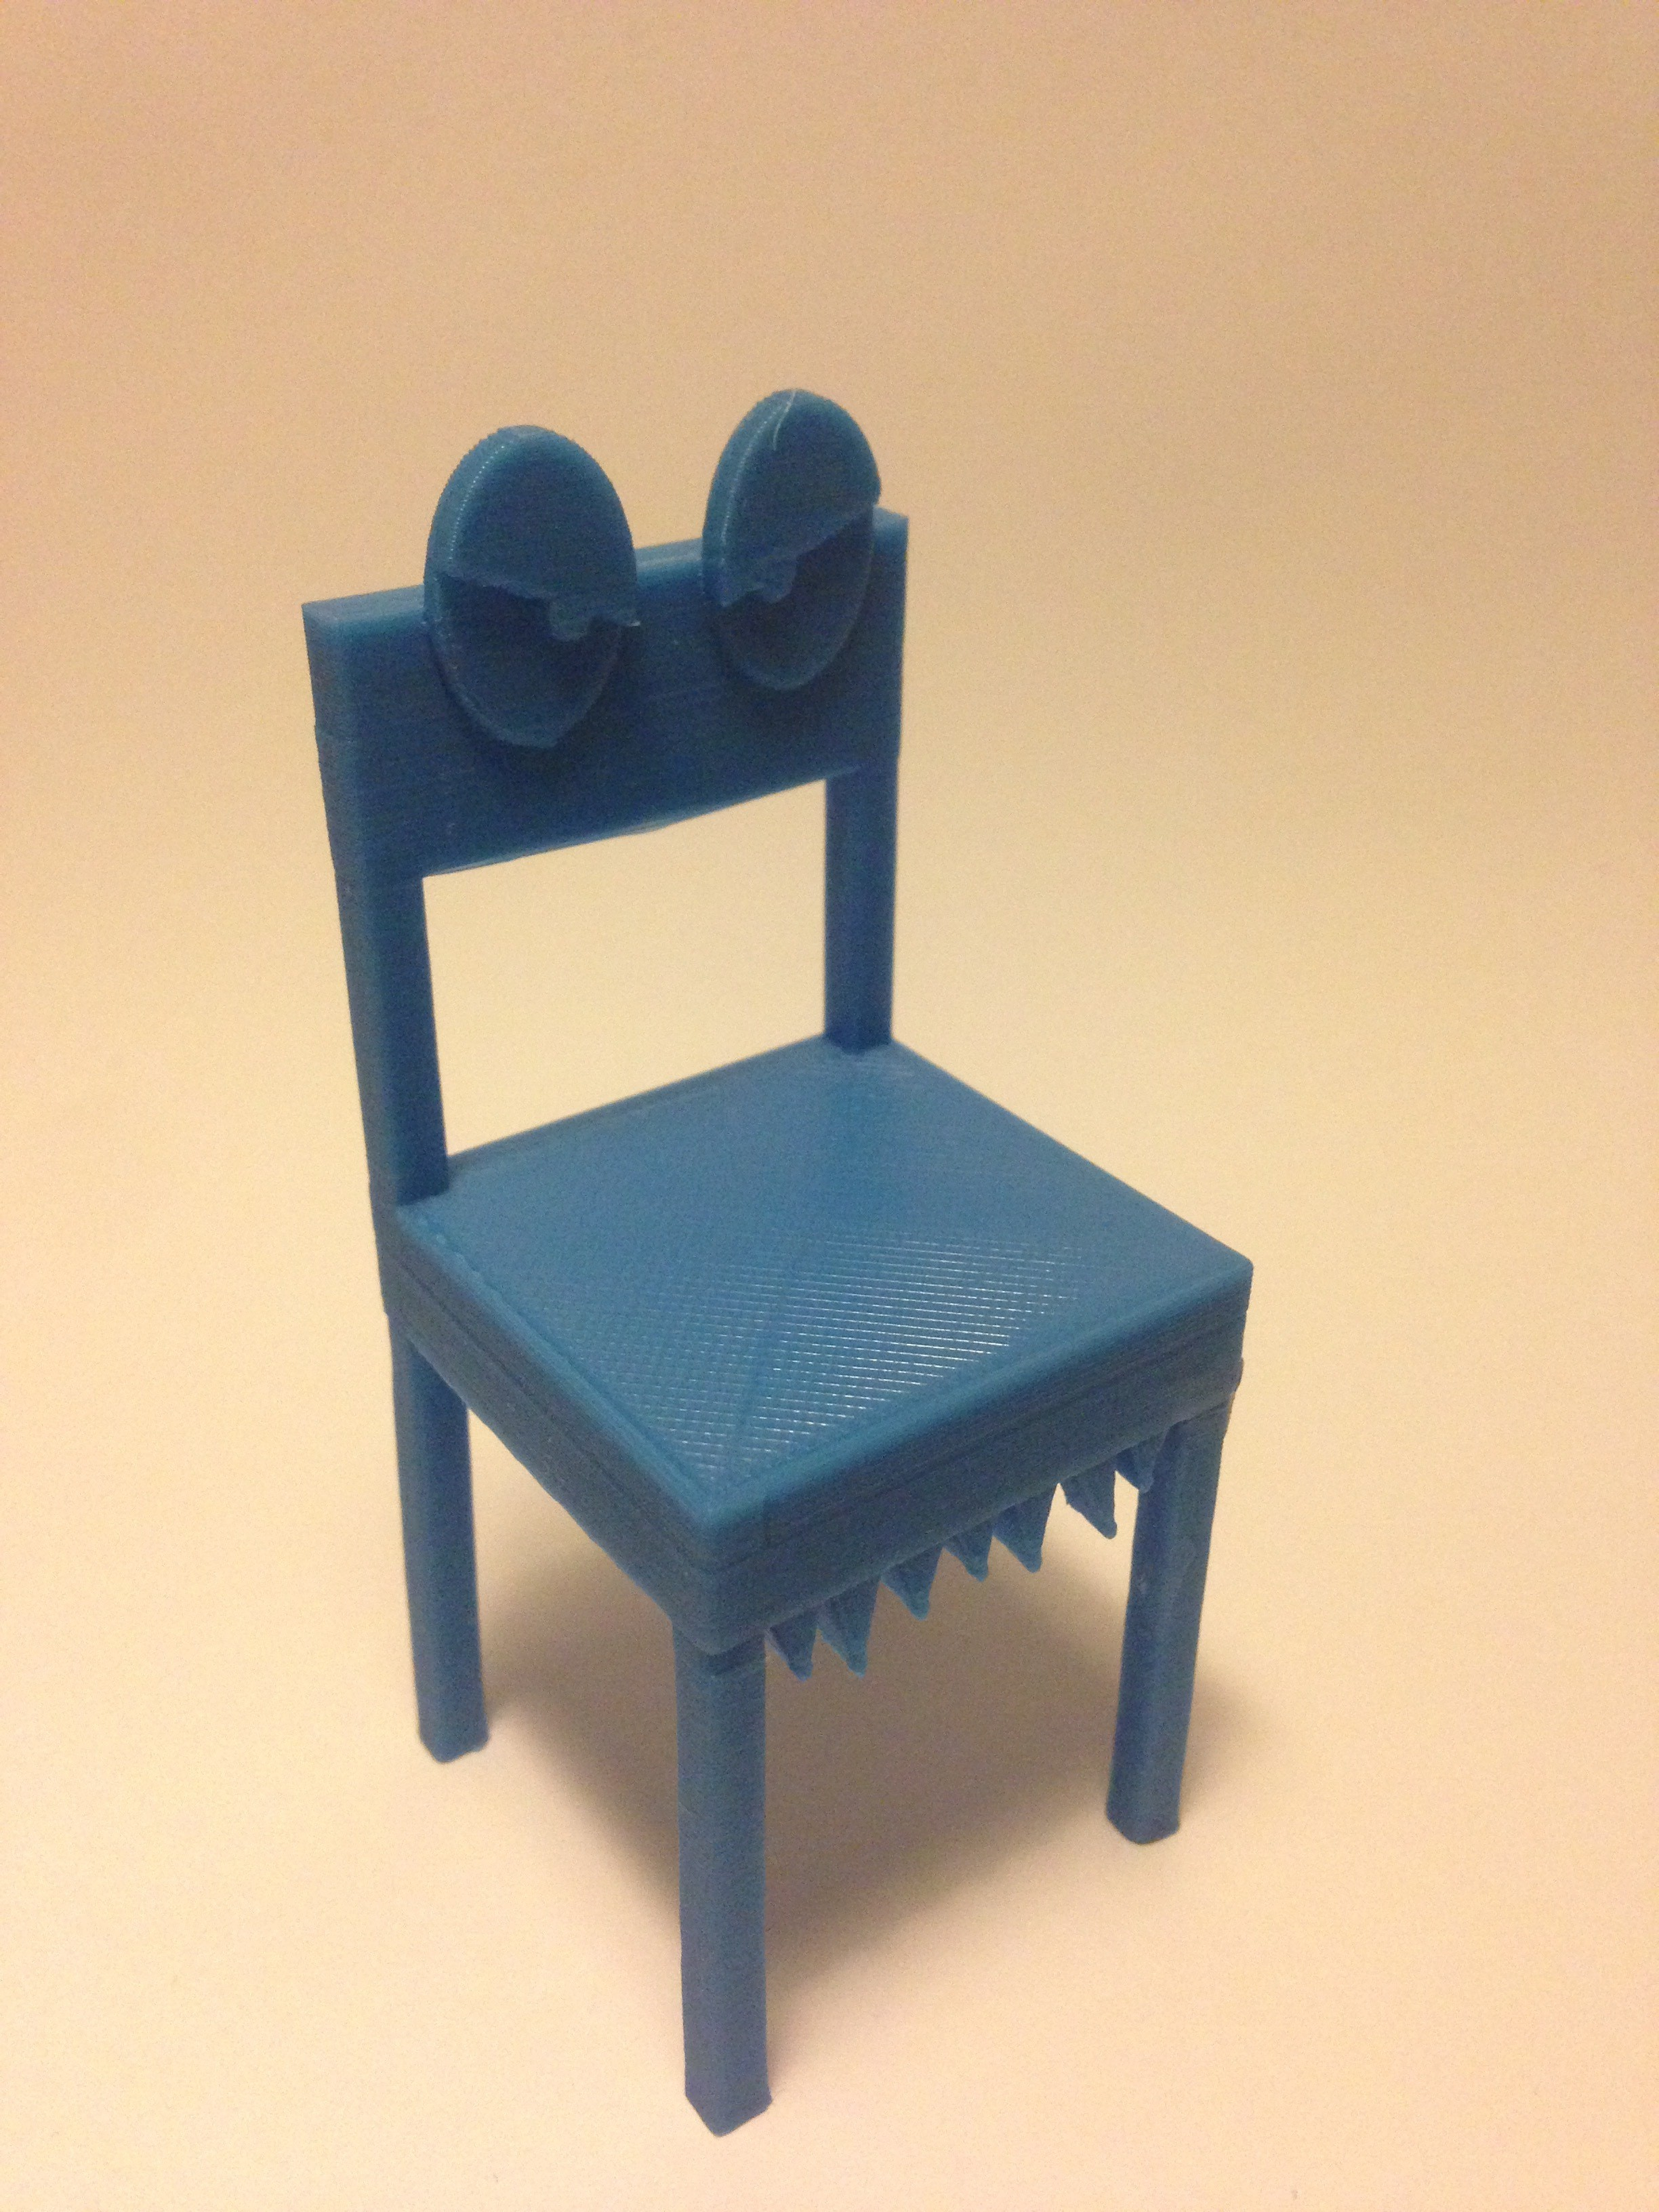 IMG_9543.JPG Download free STL file ANGRY CHAIR • 3D printer object, clement83_13